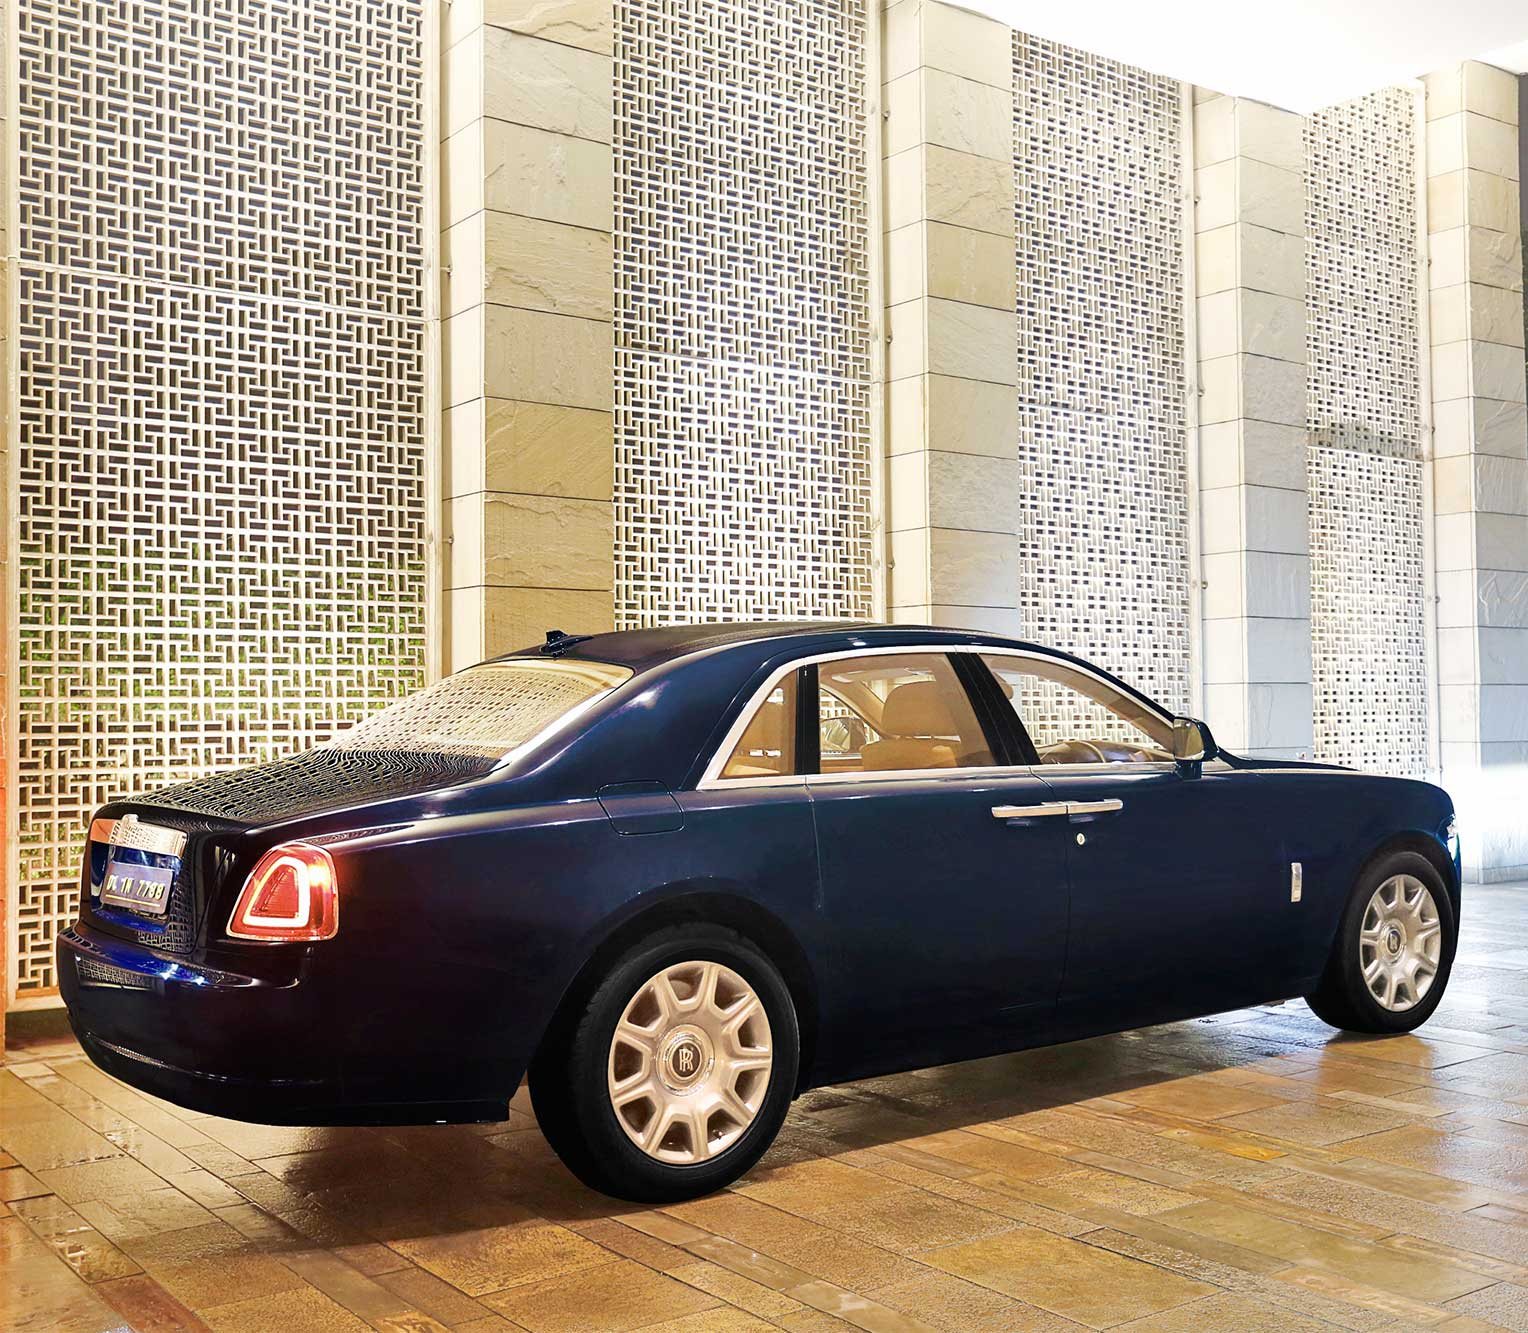 Rolls Royce Ghost 2 rear view